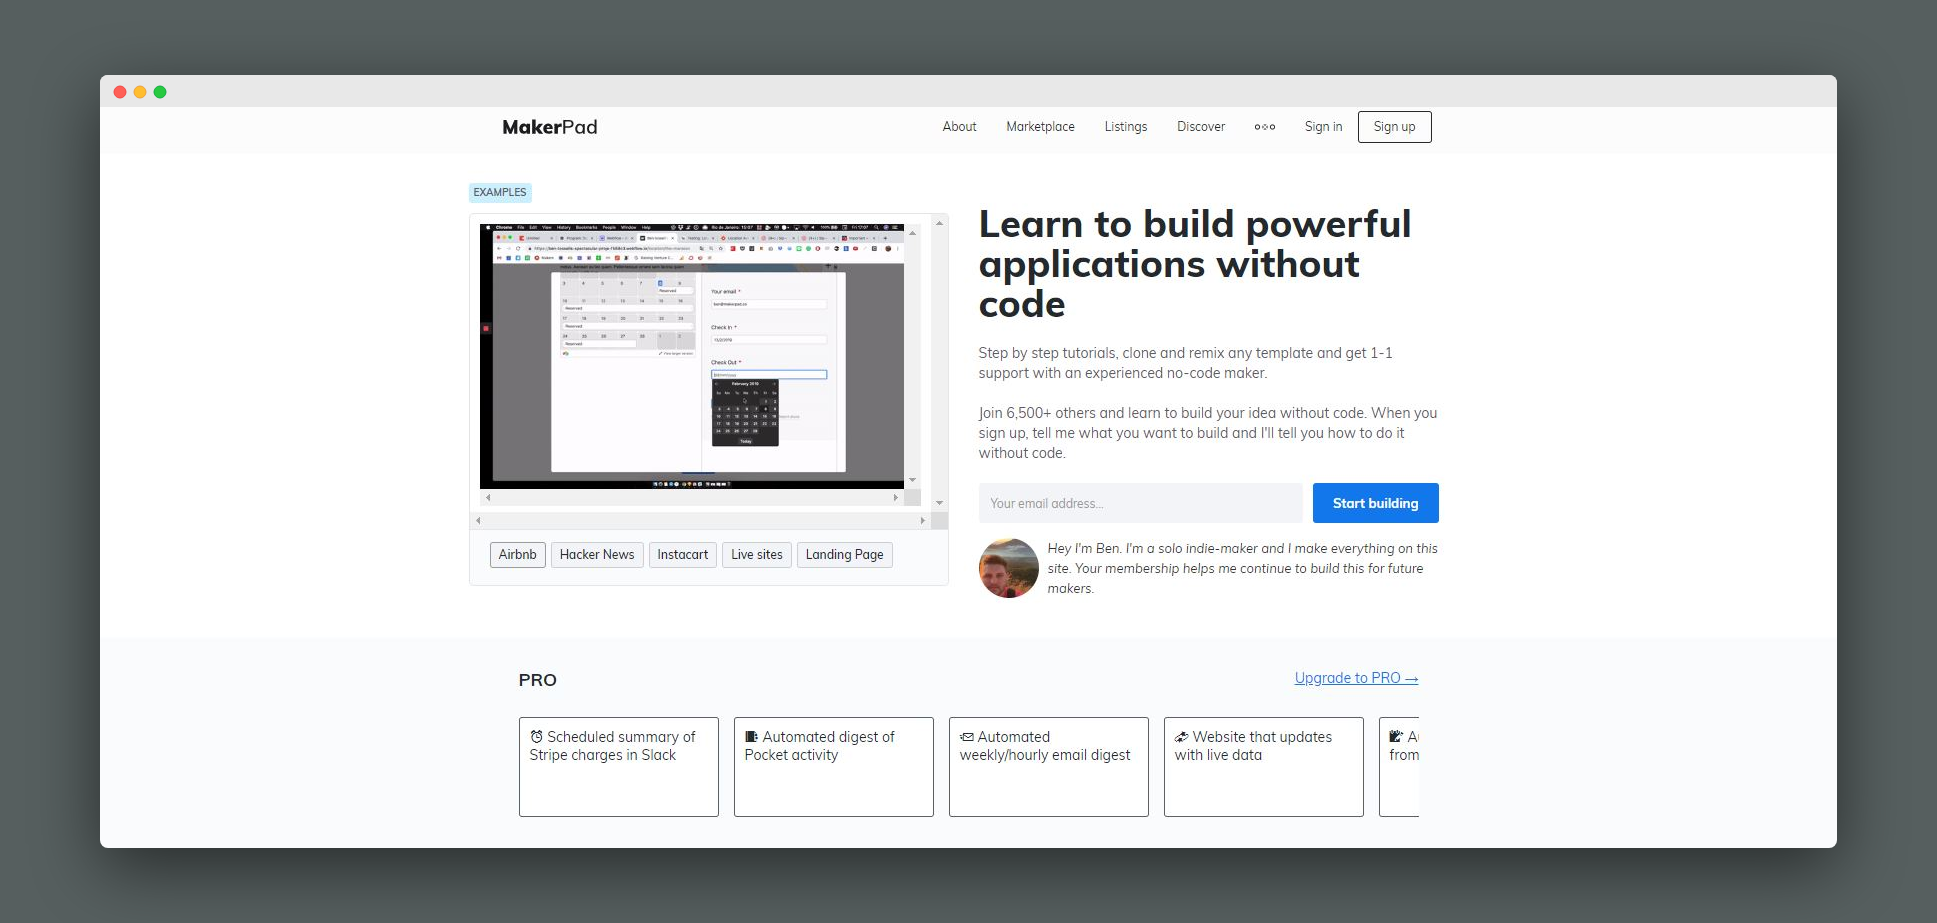 Learn to build powerful applications without code